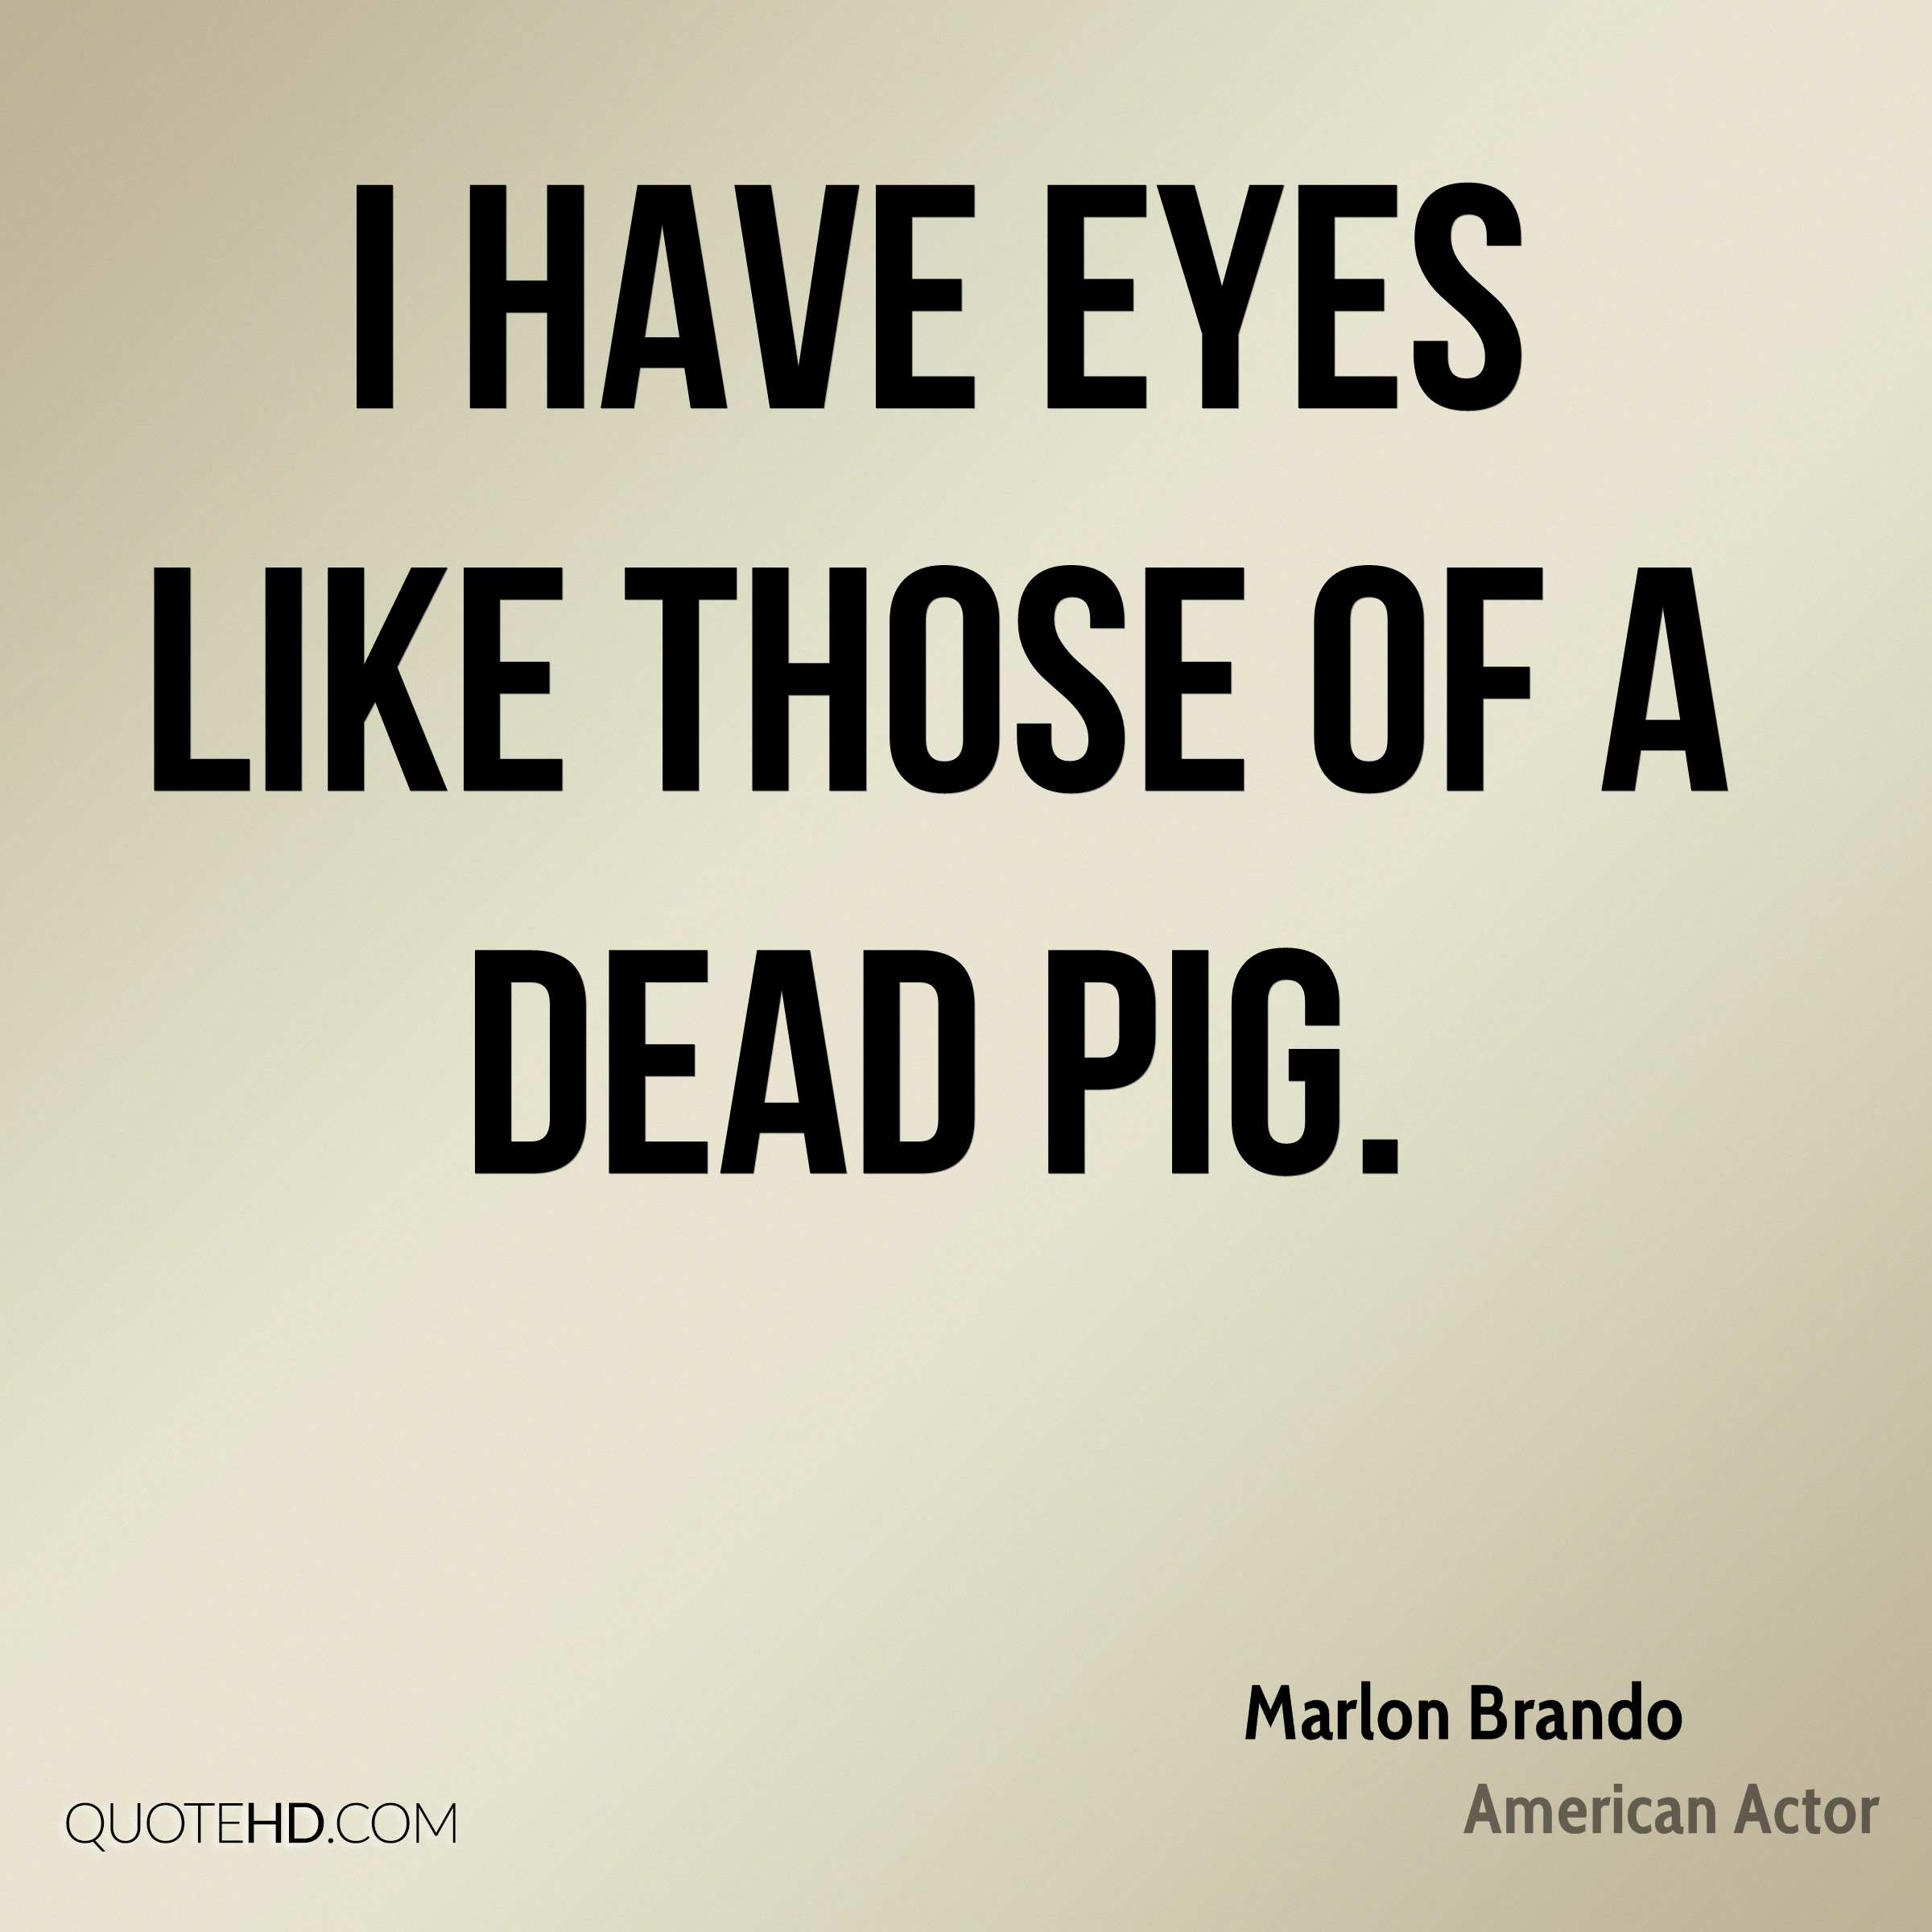 I have eyes like those of a dead pig.